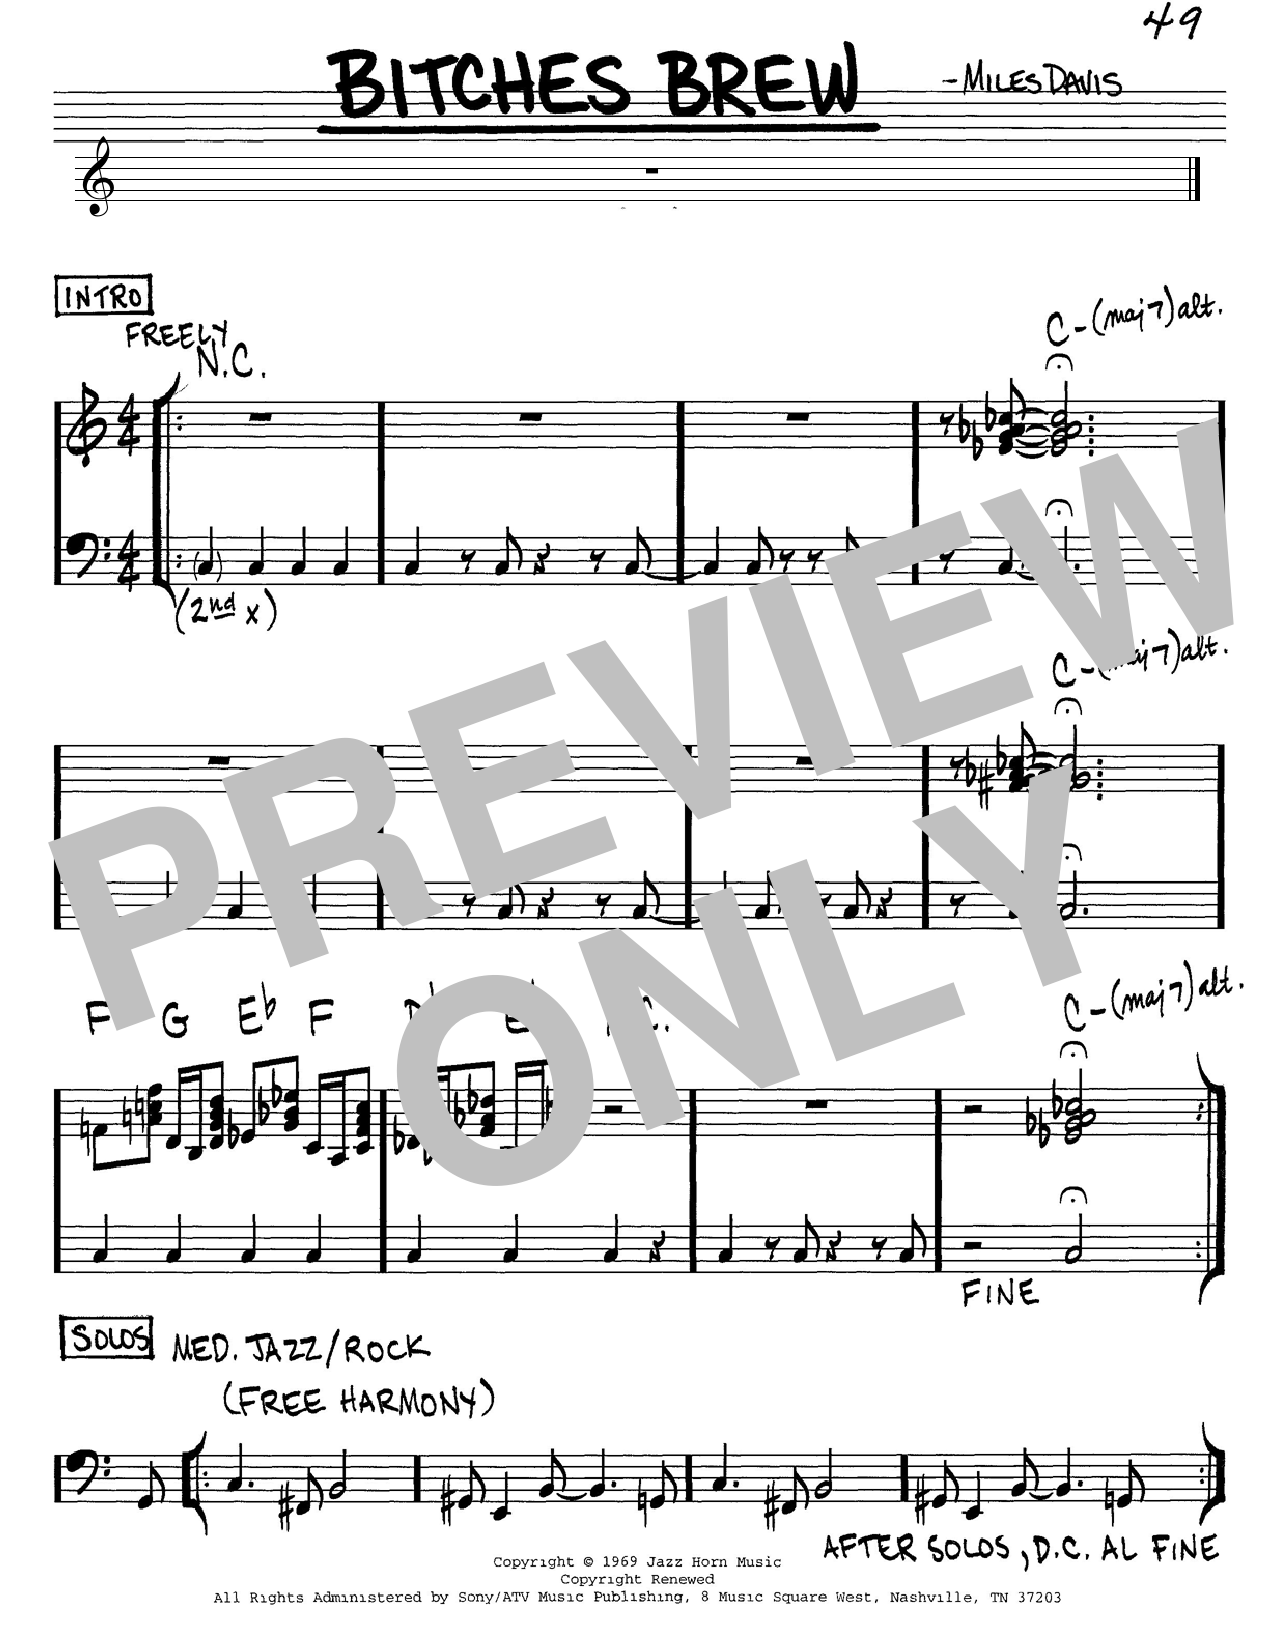 Miles Davis Bitches Brew sheet music notes and chords. Download Printable PDF.